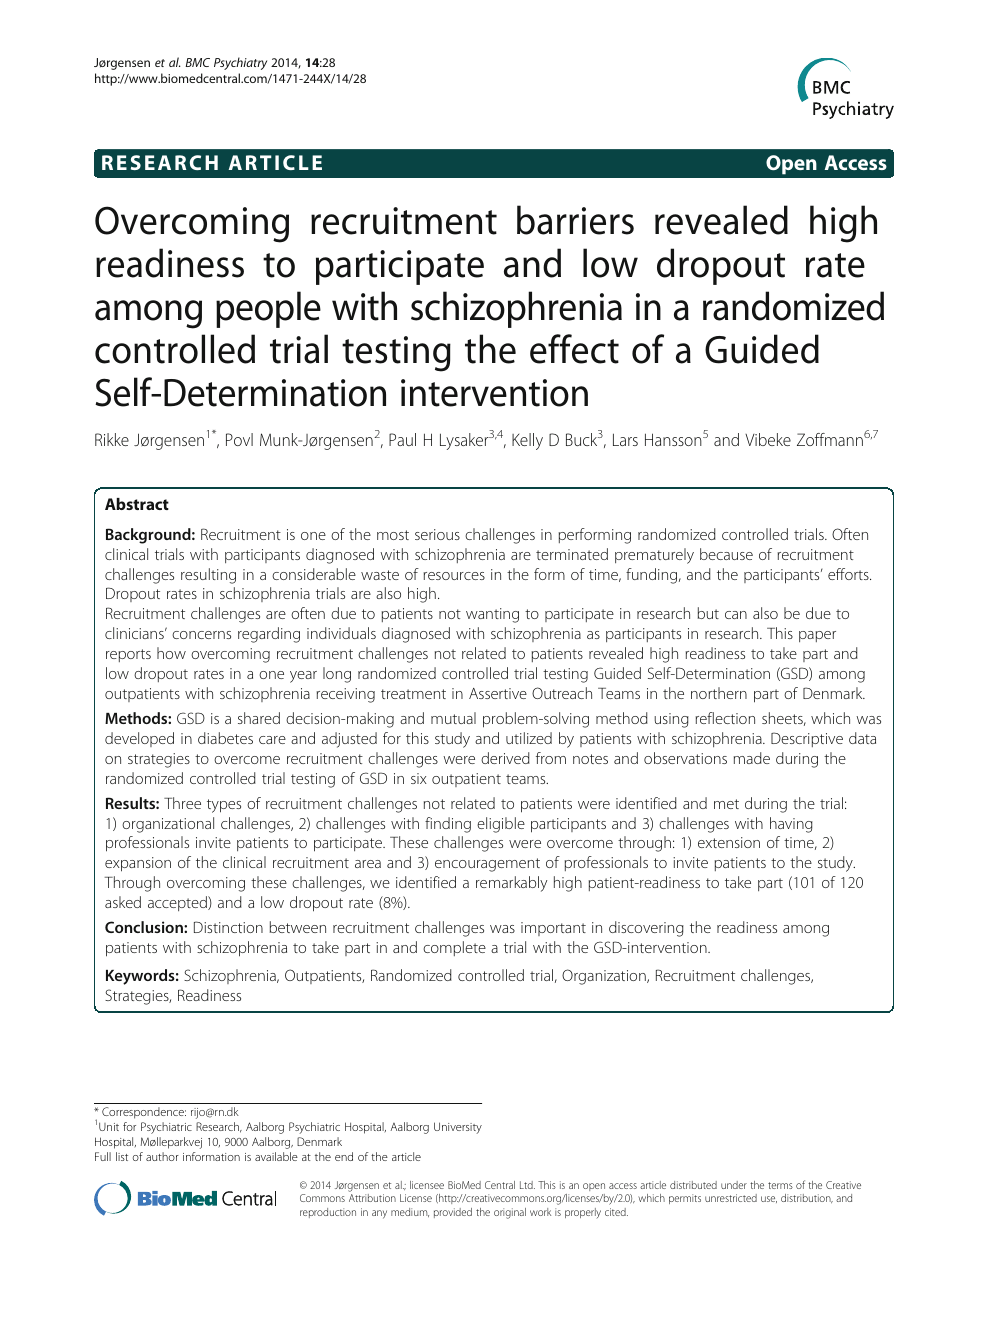 Overcoming recruitment barriers revealed high readiness to